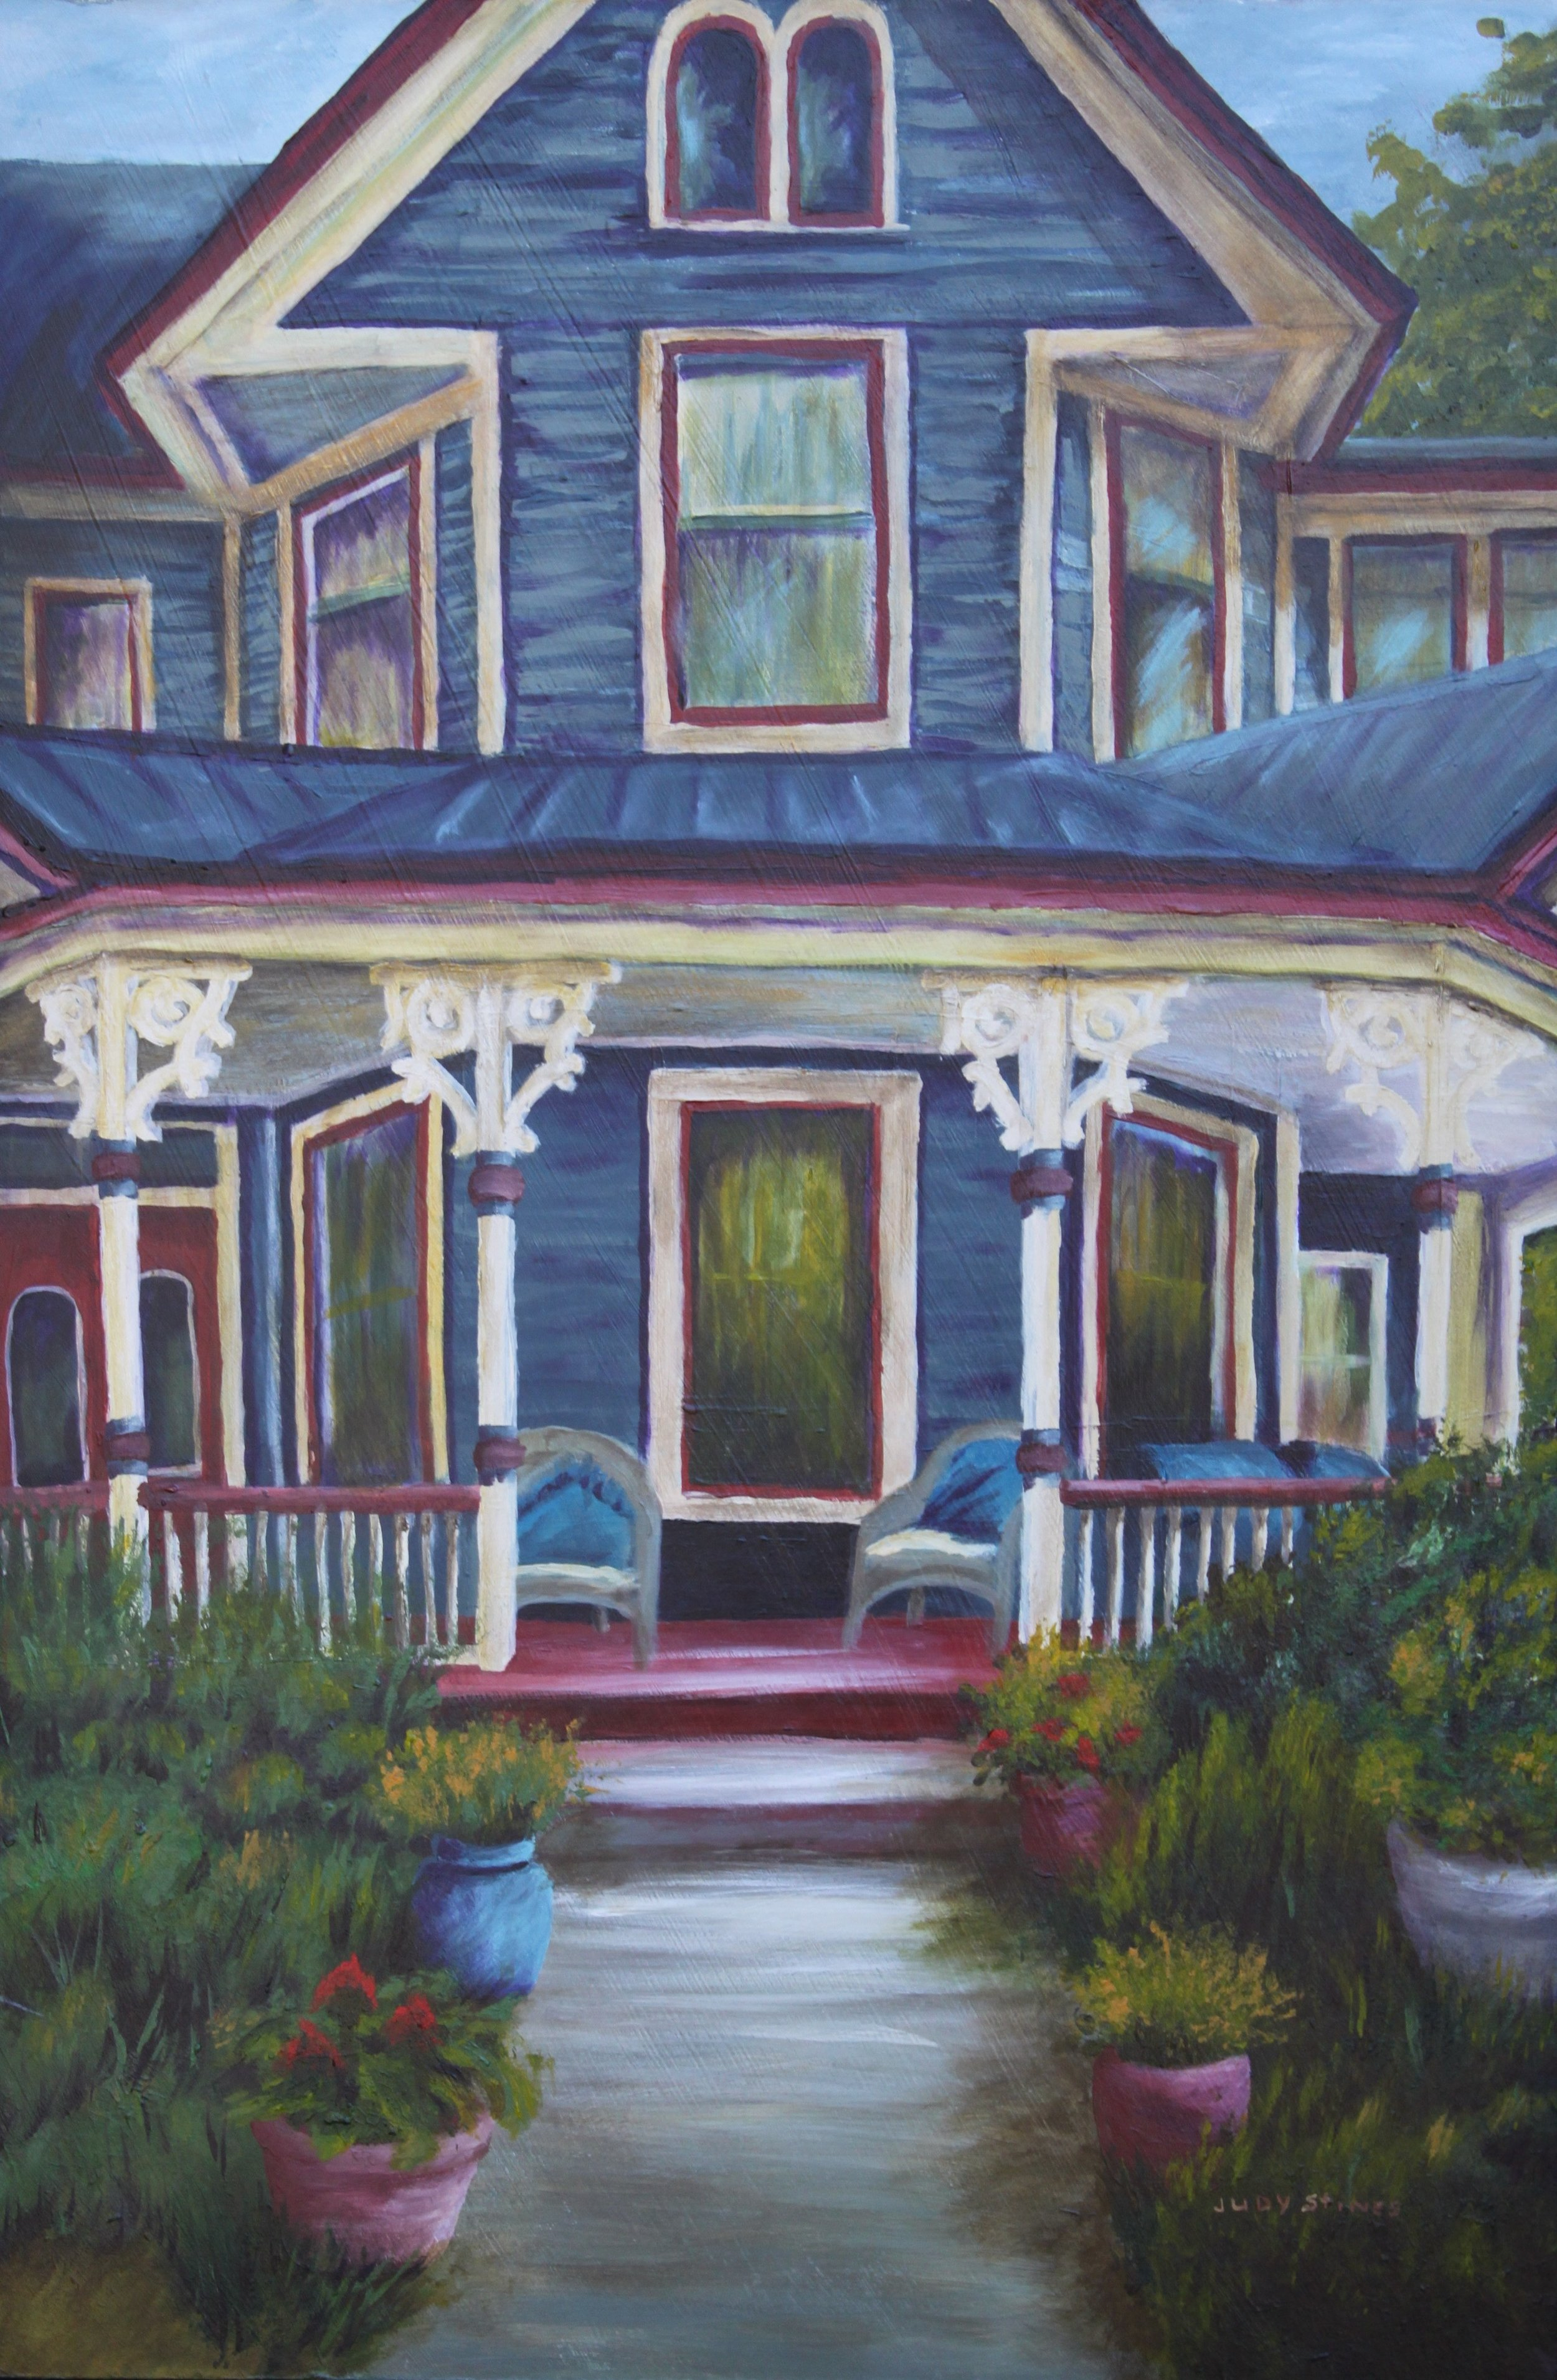 Judy Stines - Image: Historic Wake ForestJudy works in soft pastel, oil pastel and acrylic. She loves combining texture and motion with the layering of color to become one with her art. Her palette is drawn from the colors of her adventures which are the inspirations for her art.